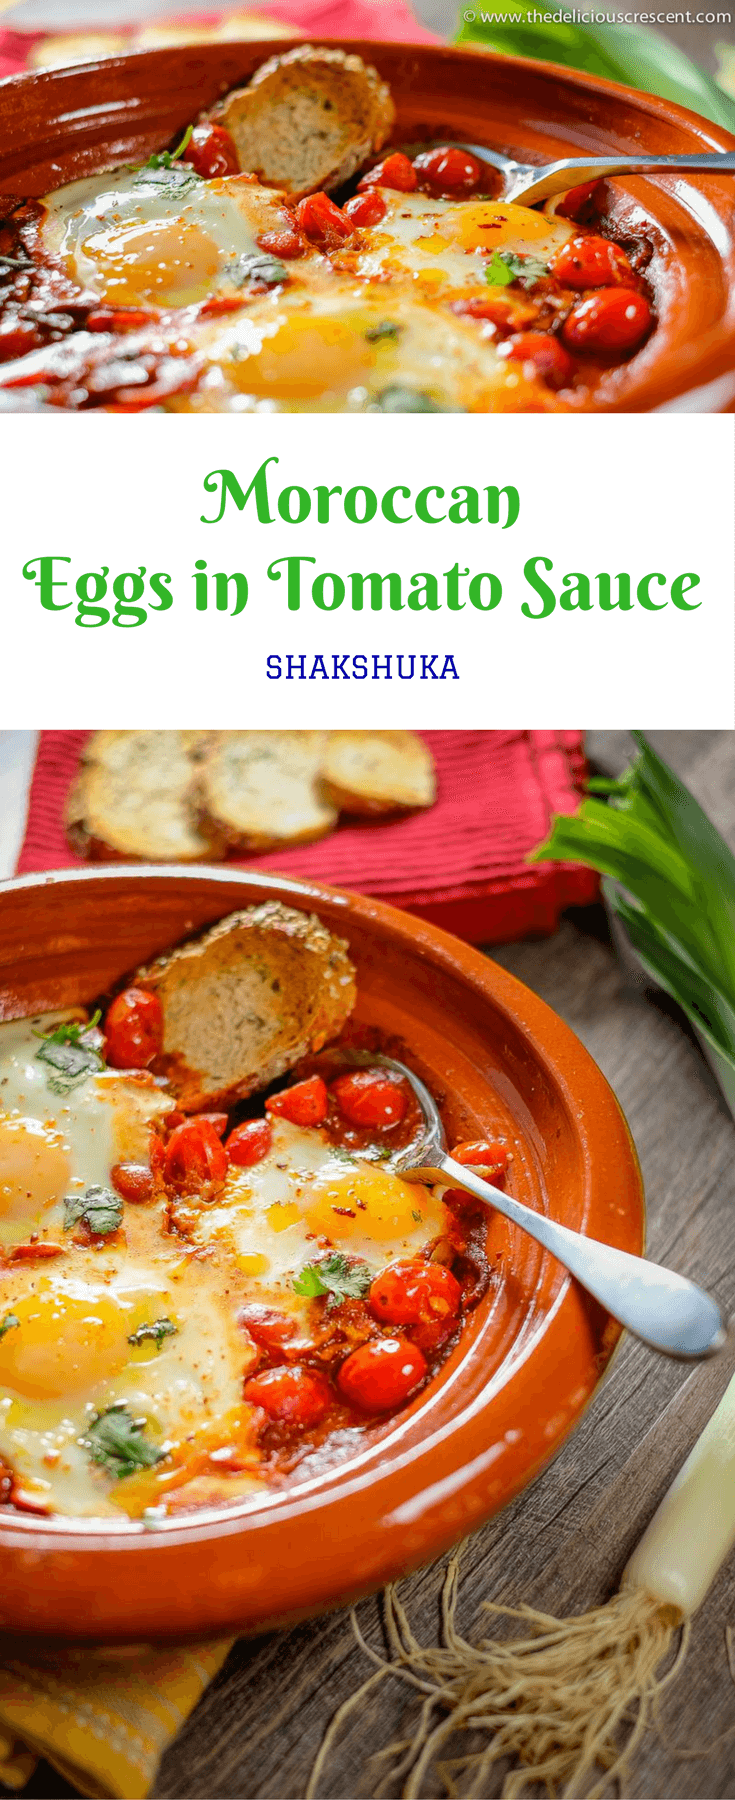 Moroccan eggs in tomato sauce is a healthy comfort dish that is easy to prepare. It is a tasty option for brunch or any other meal of the day. #Moroccan #Eggs #Brunch # Breakfast #Shakshuka #Tomatoes